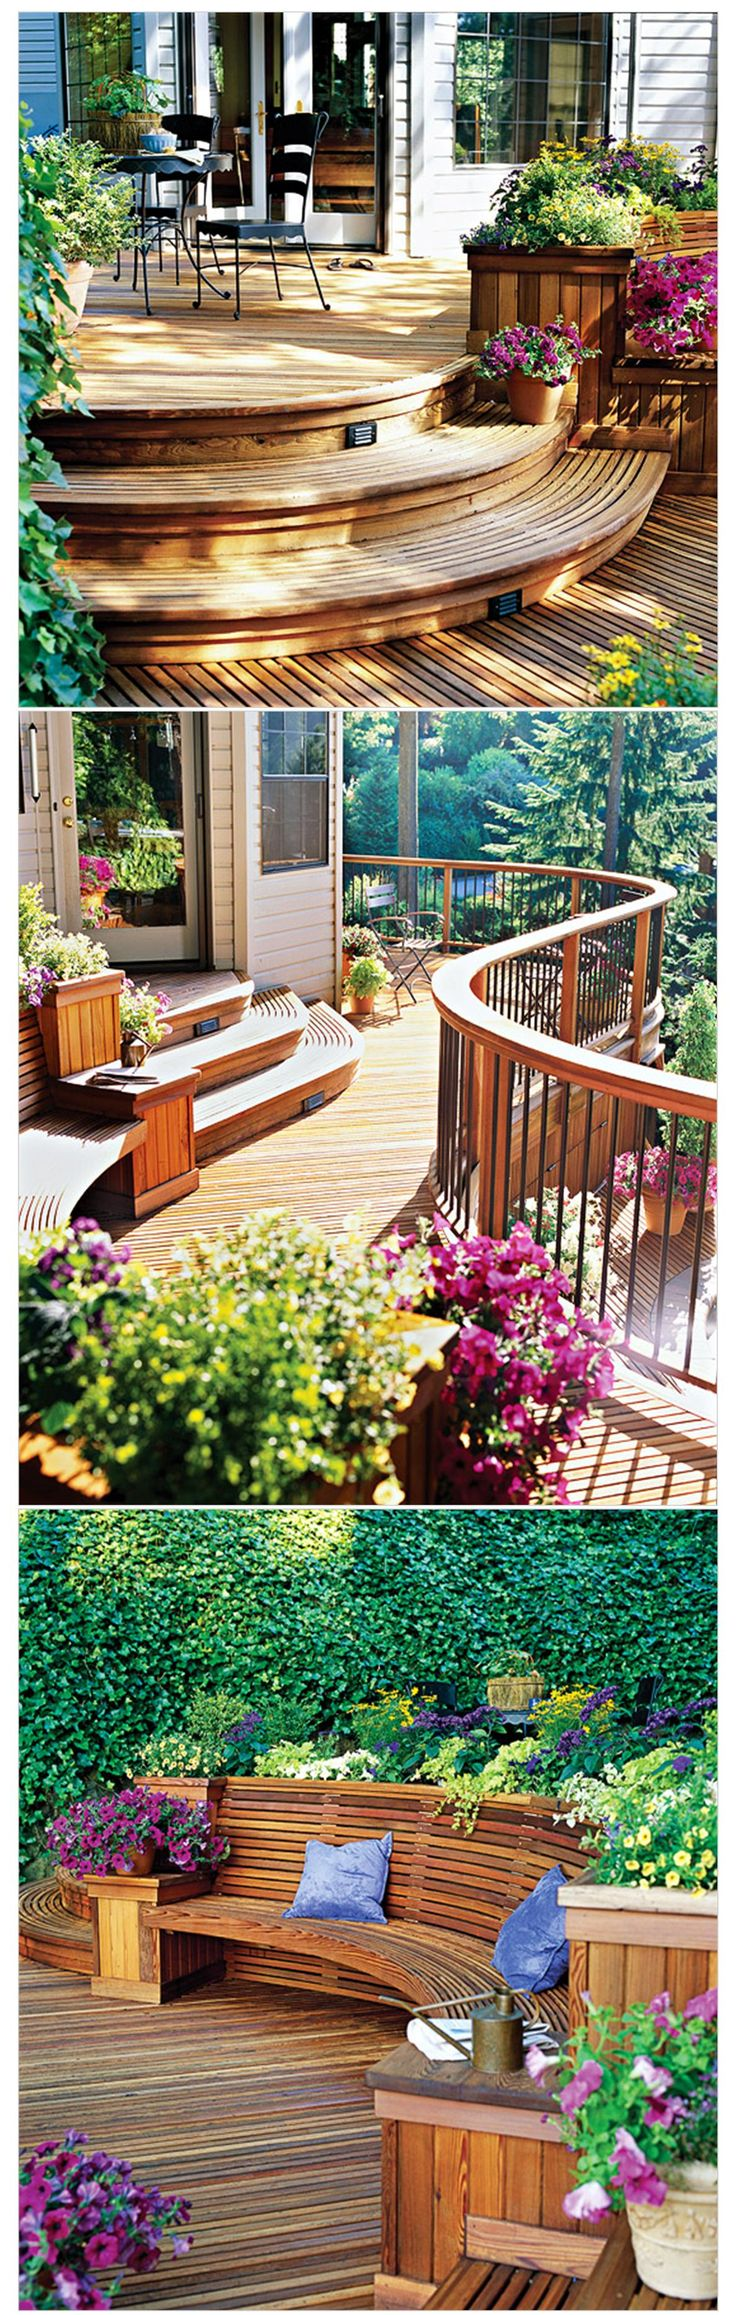 Jahzz ☯ | ..Multilevel-Deck with graceful Curves, great choice of plants and wood colours. (perfect design): Decks Ideas, Patio Step, Decks Design, Perfect Design, Outdoor Living Spaces, Back Porches, Outdoor Spaces, Grace Curves, Multilevel Decks